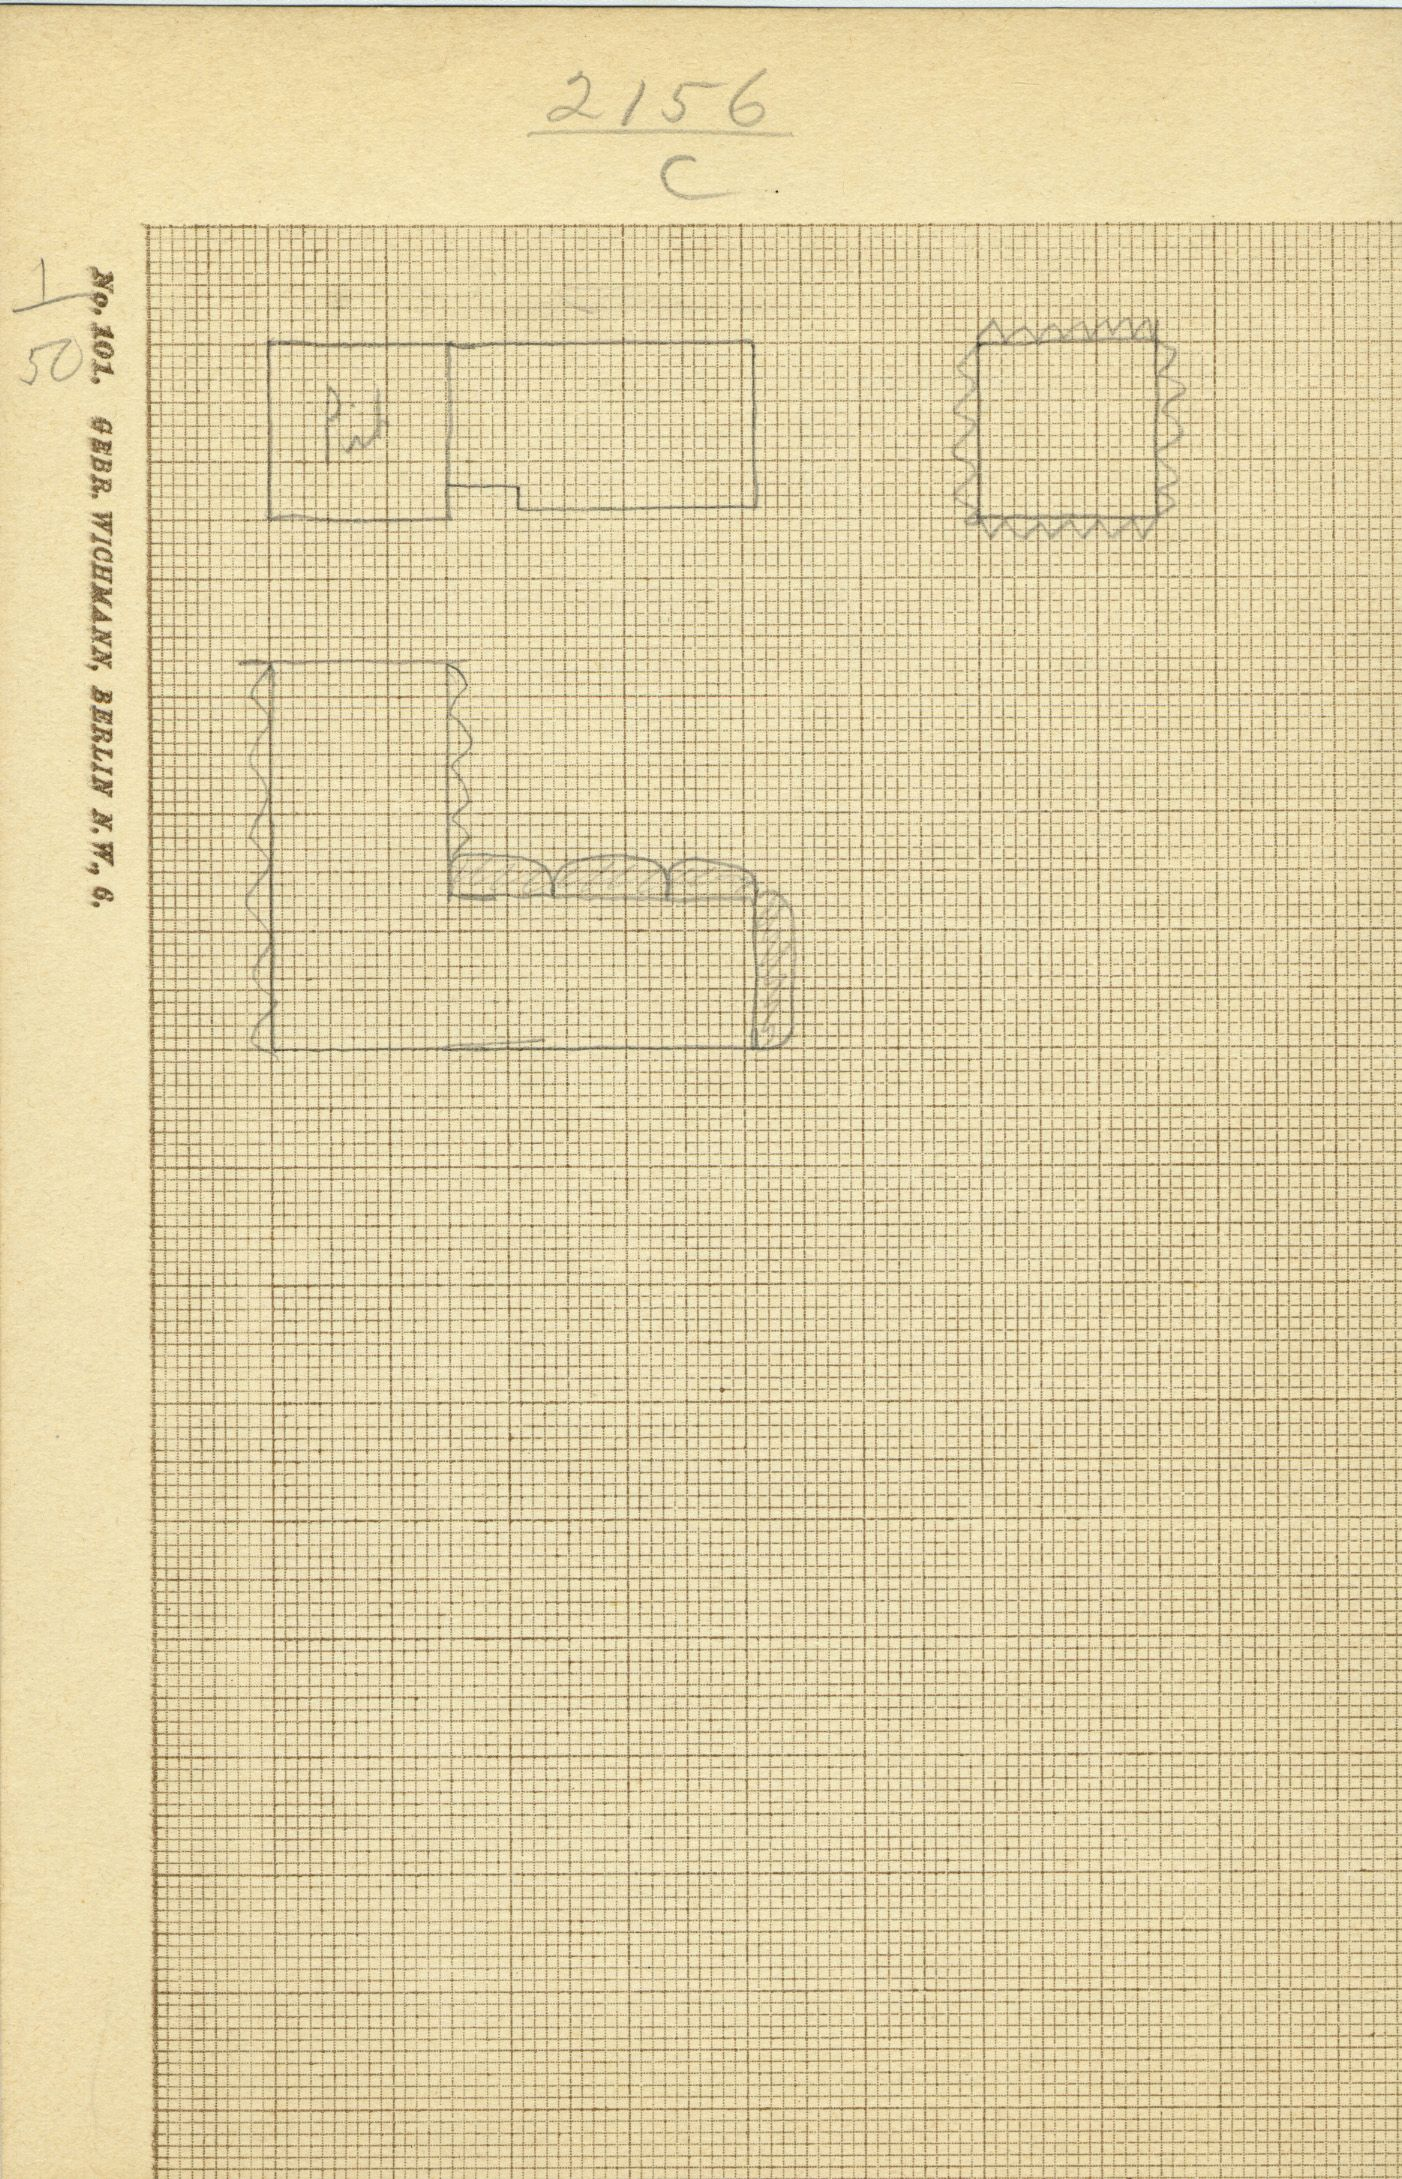 Maps and plans: G 2156', Shaft C